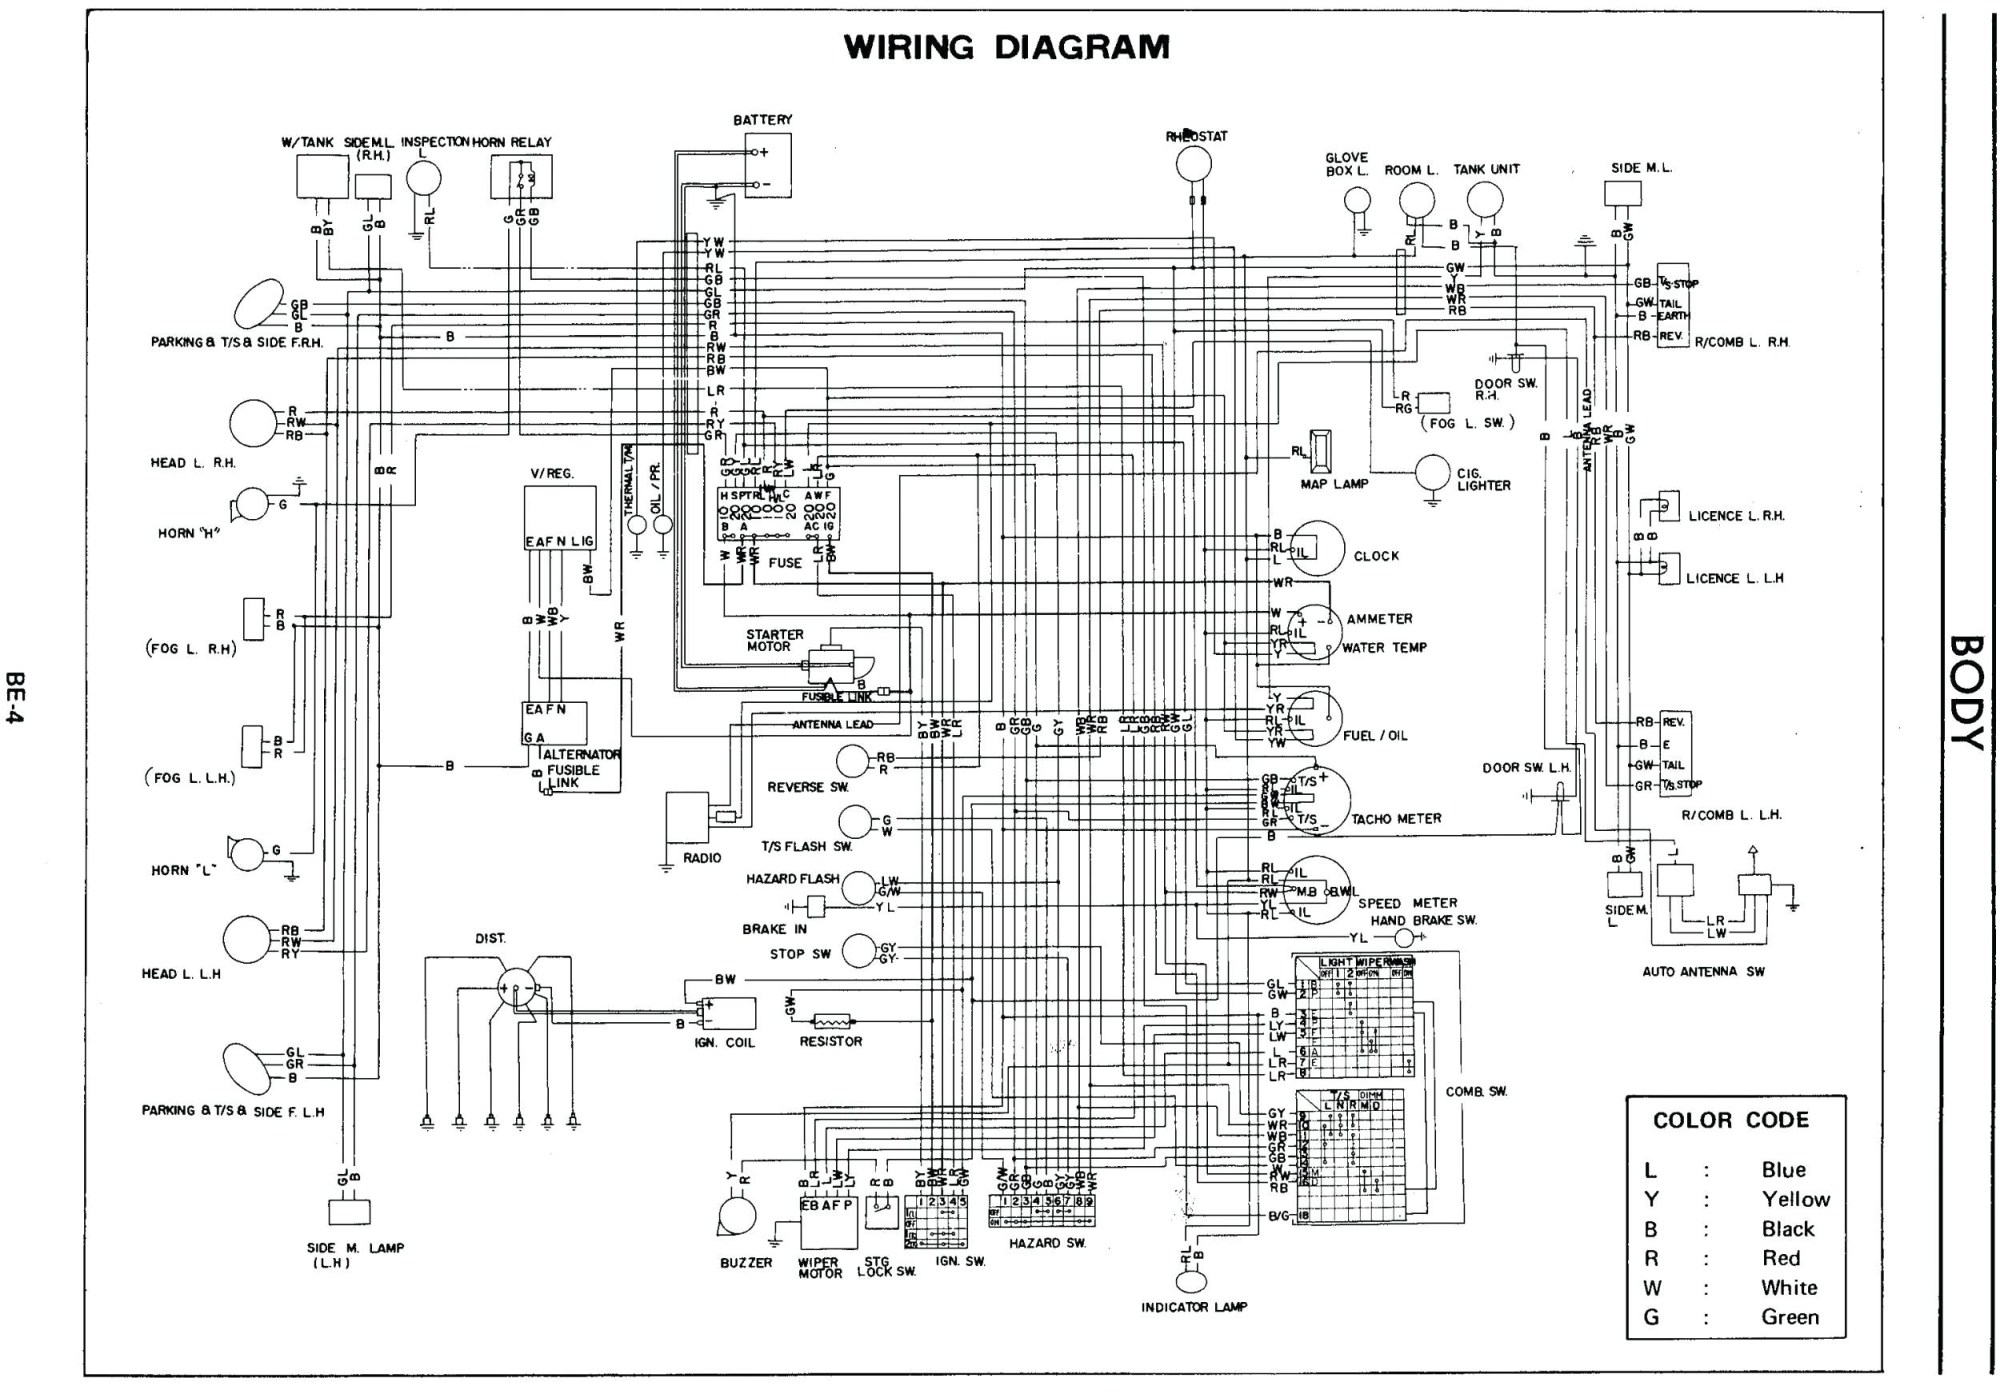 hight resolution of worldvisionsummerfest com wp content uploads 2018 nissan 350z wiring diagram pdf nissan 350z wiring diagram pdf